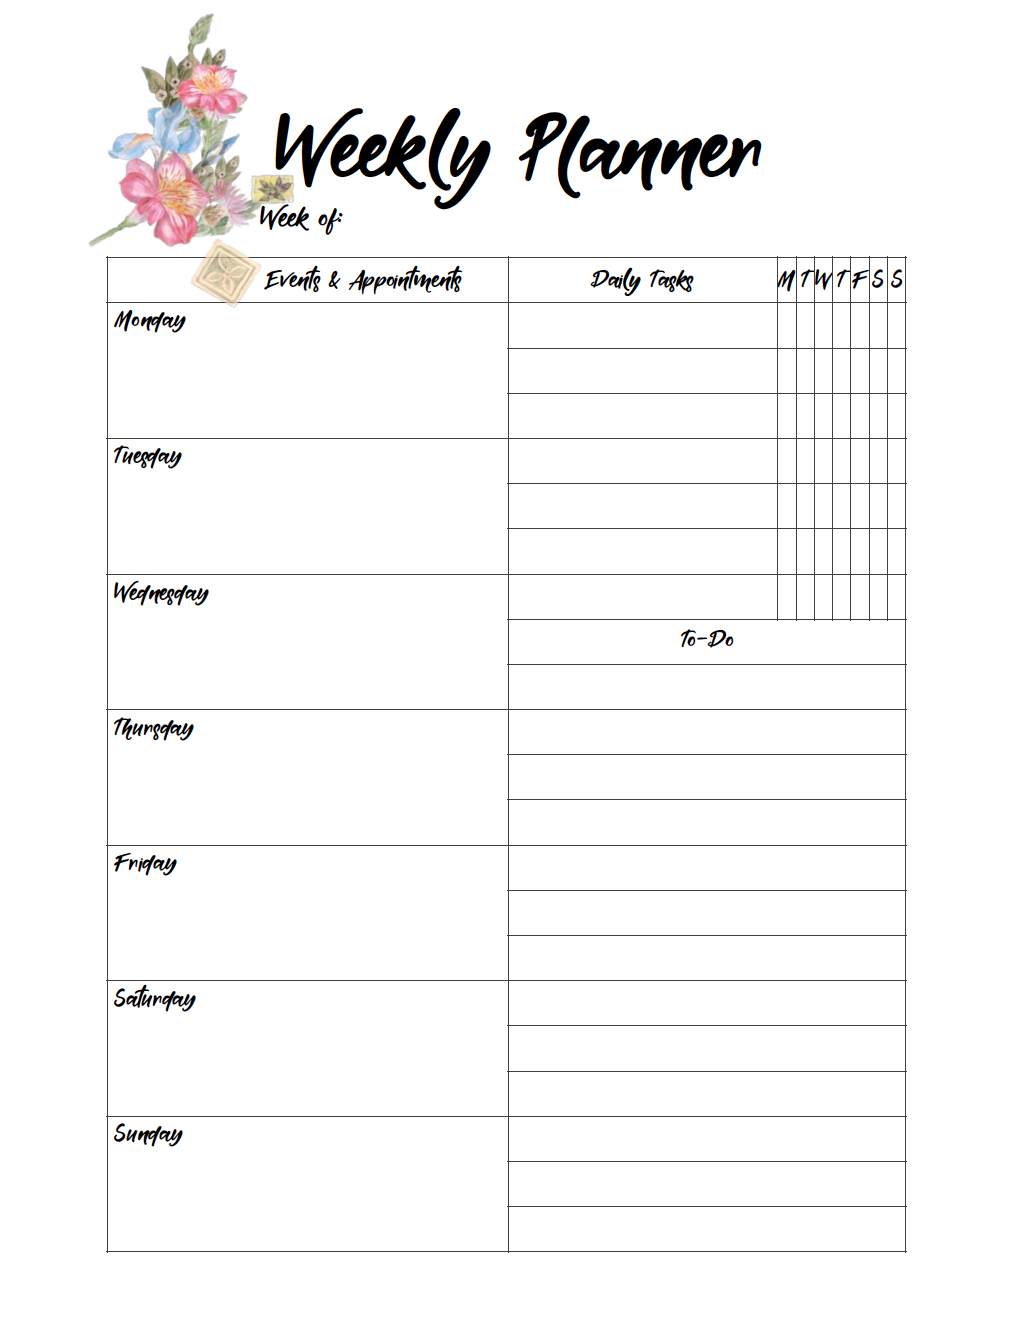 Free Printable Weekly Planners: Monday Start - Free Printable Weekly Planner